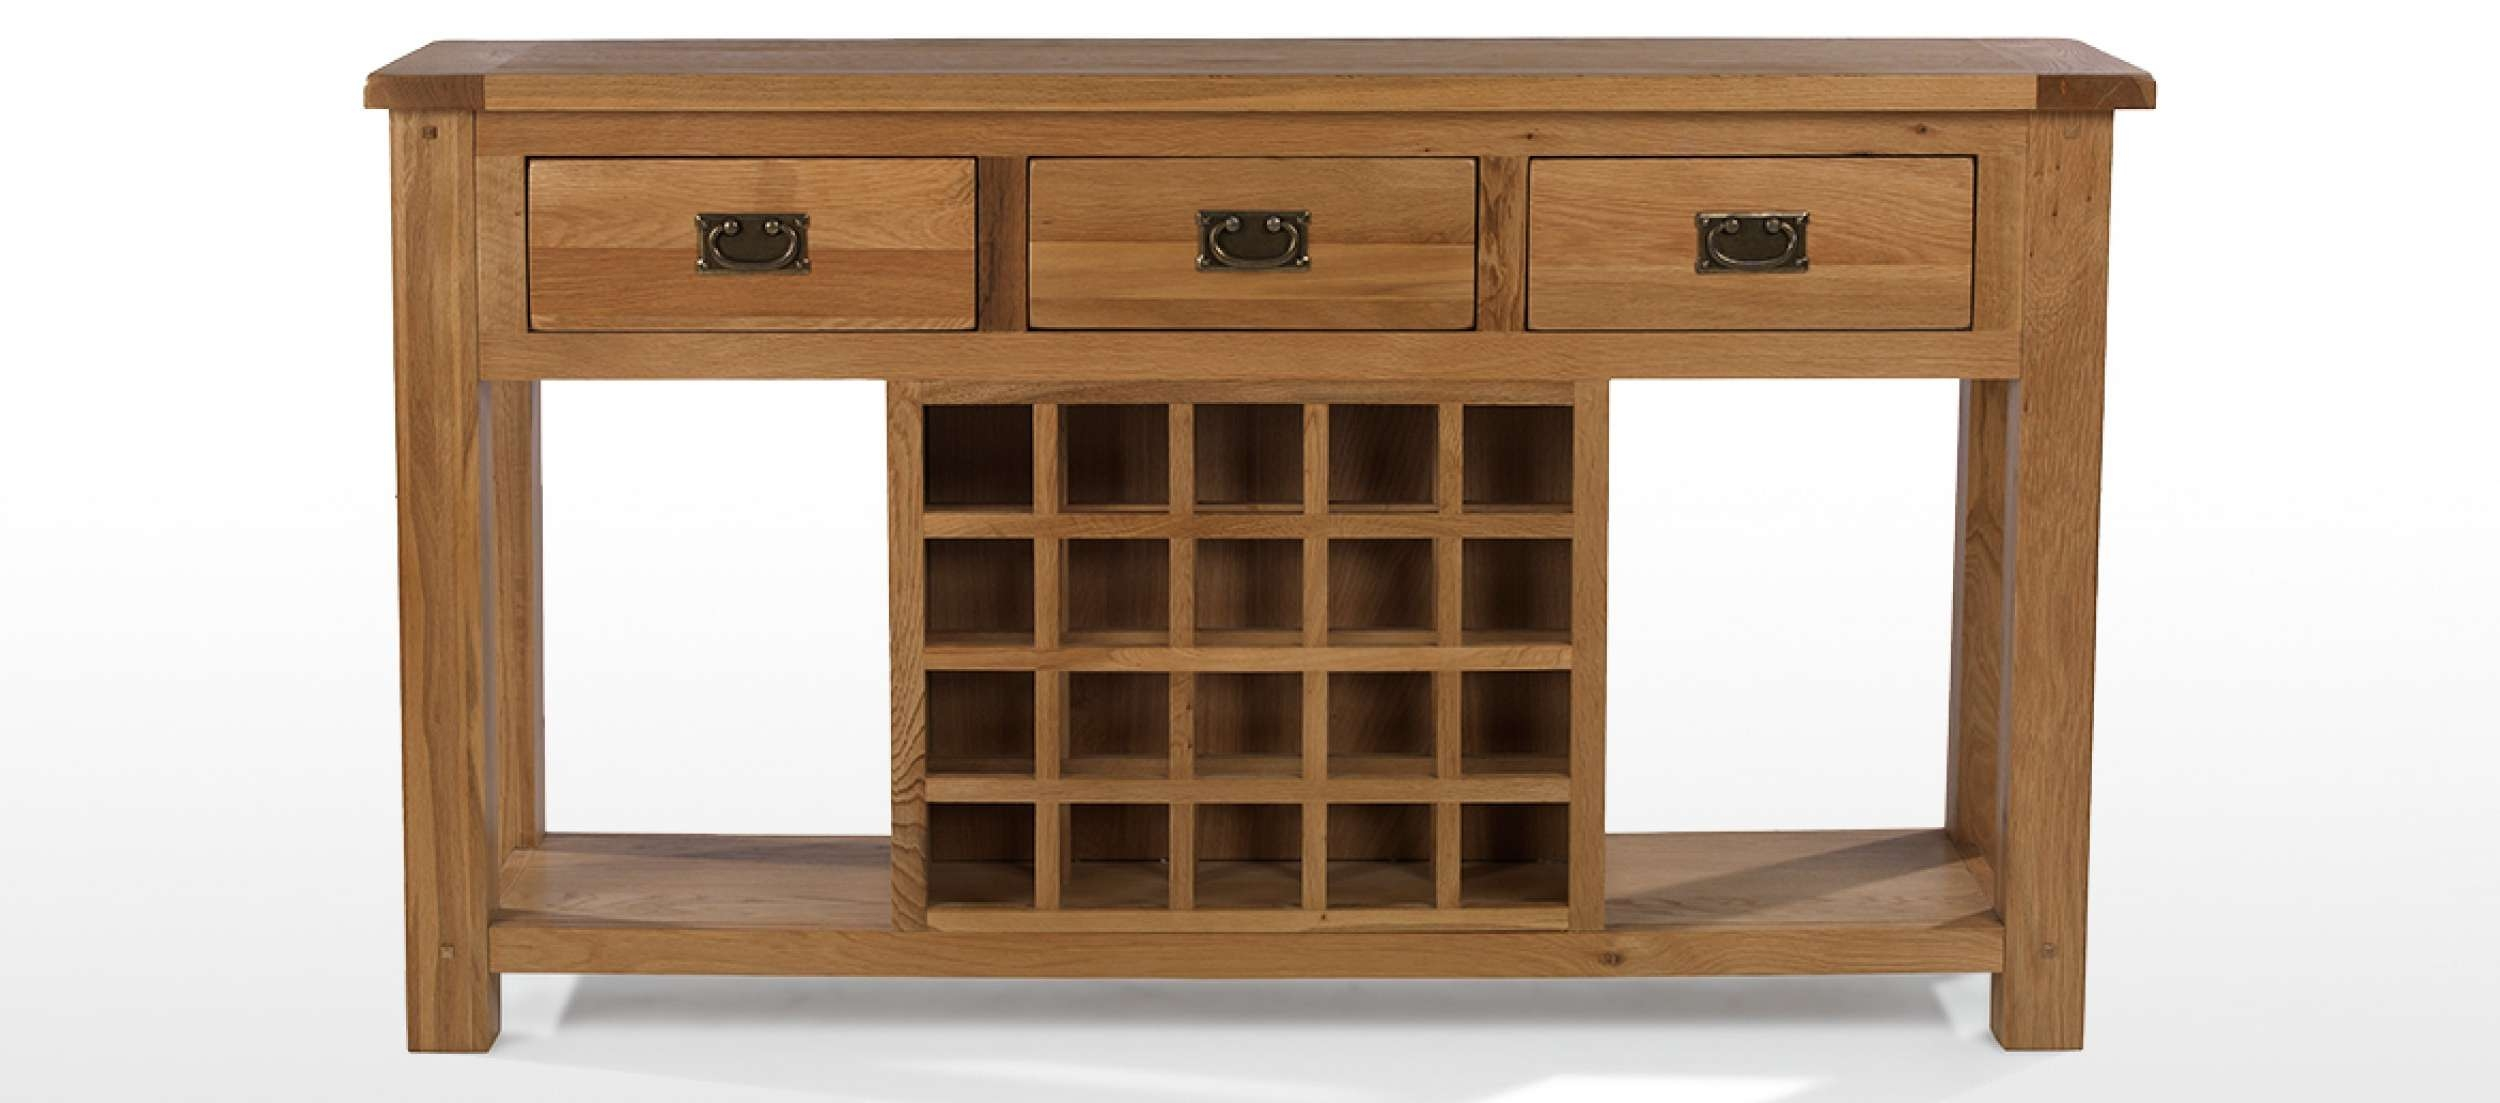 Rustic Oak Wine Rack Console Table | Quercus Living With Sideboards With Wine Rack (View 18 of 20)